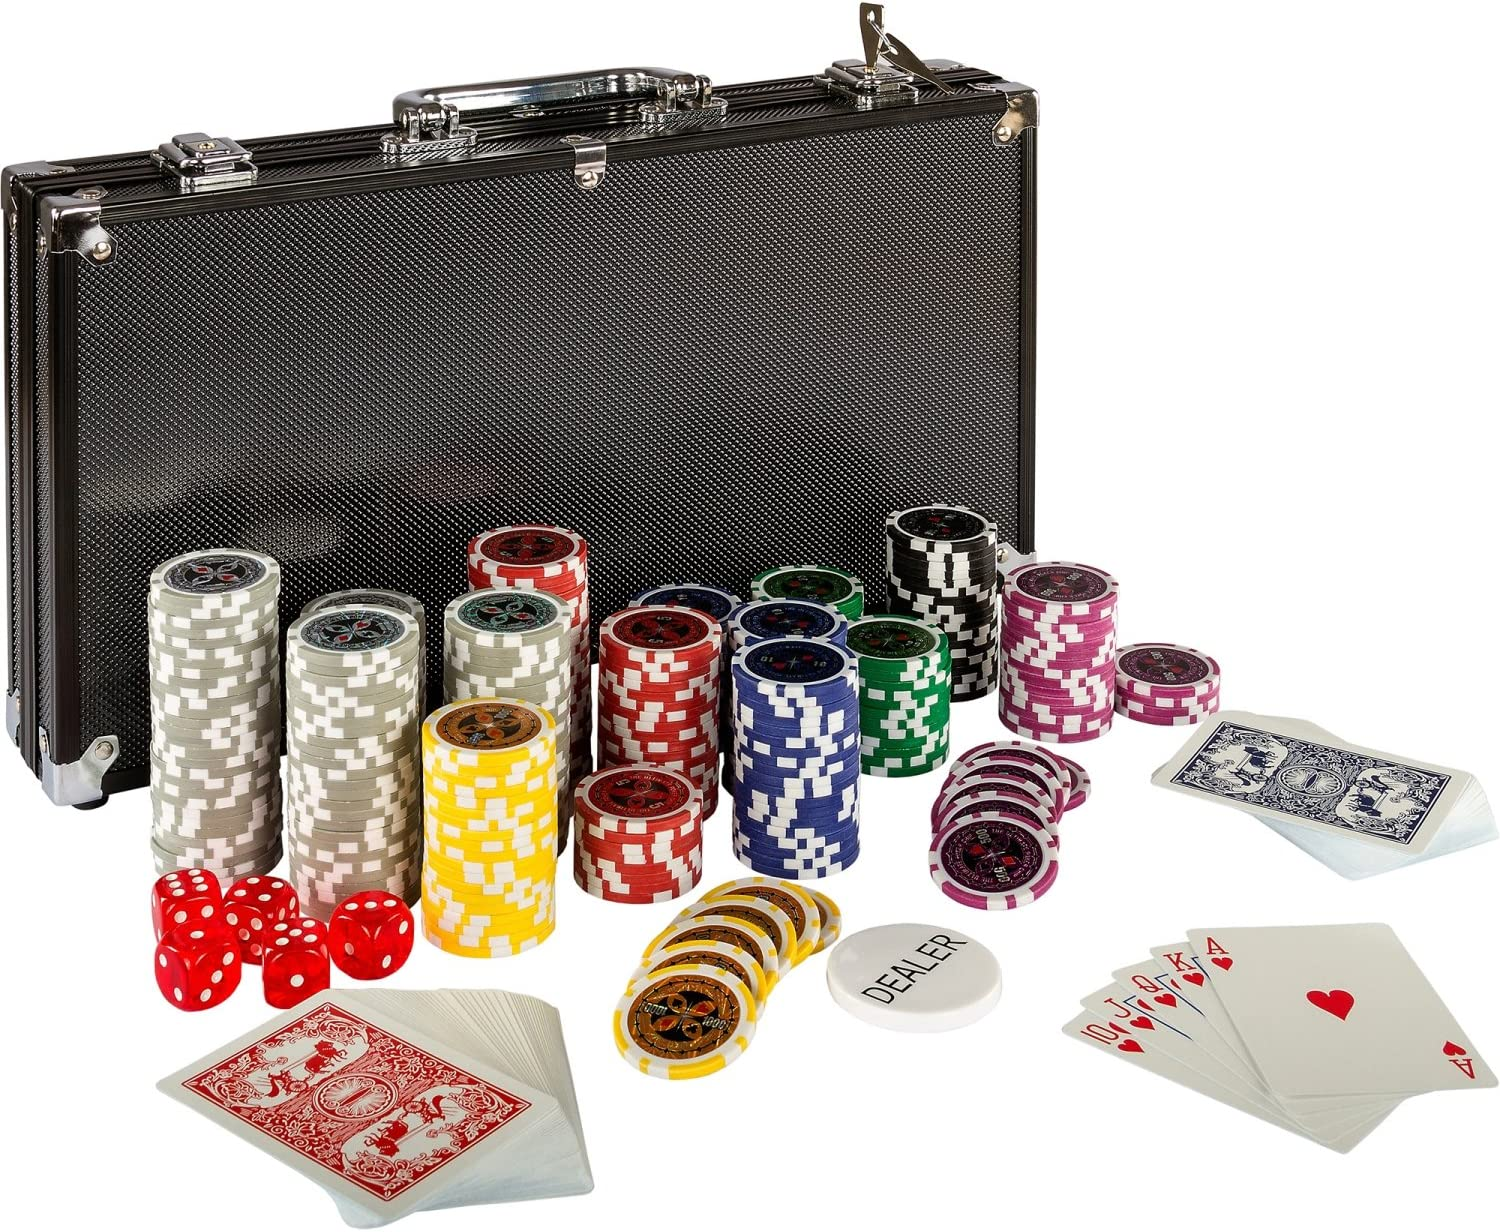 Ultimate Black Edition Poker Set 300 Laser Chips 12 Grams Metal Core 100 Plastic Cards 2 Poker Decks Aluminium Poker Case 5 Dice Dealer Button Amazon Co Uk Sports Outdoors